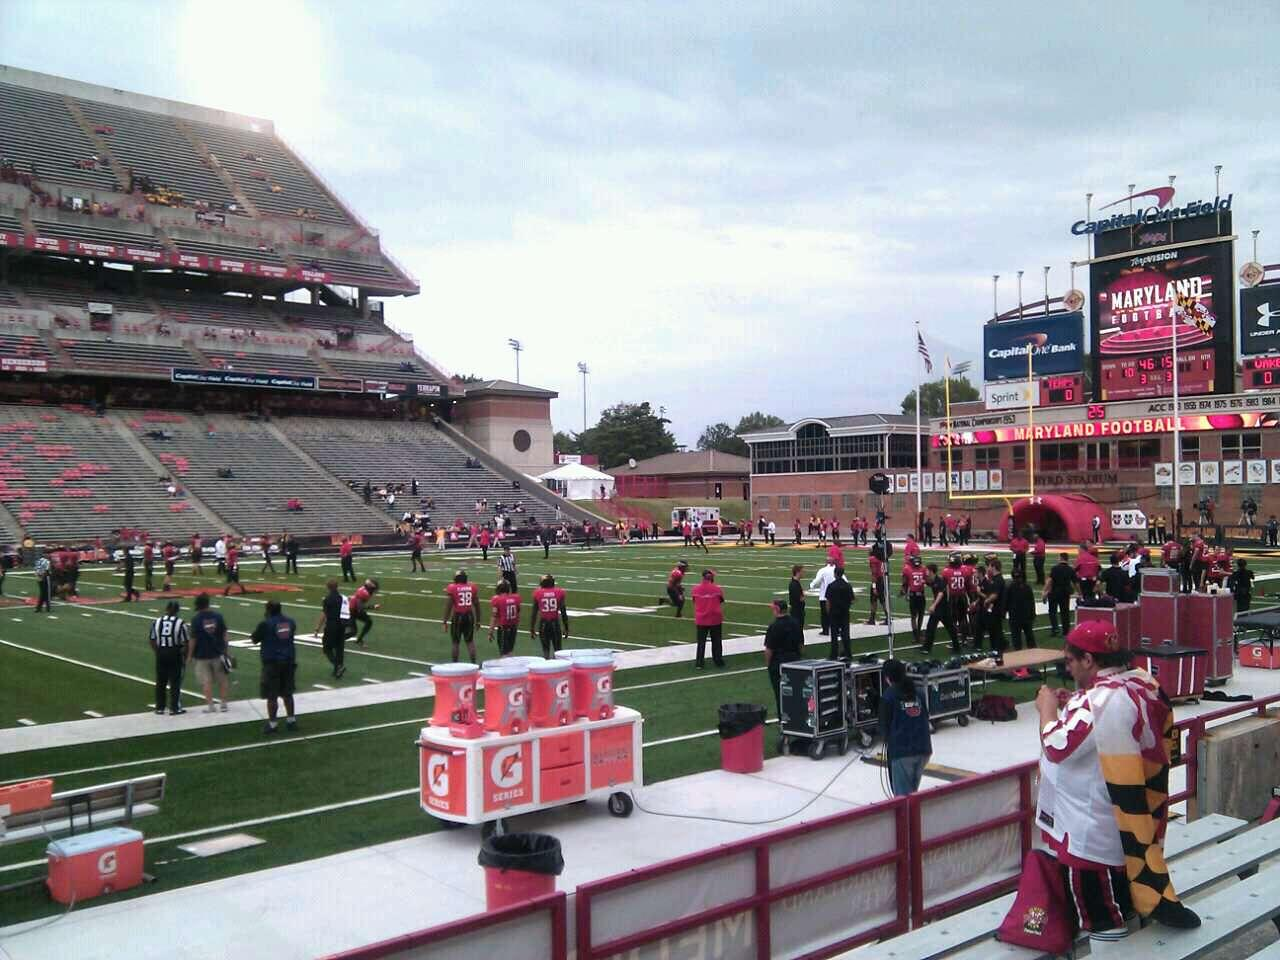 Maryland Stadium Section 24 Row g Seat 10